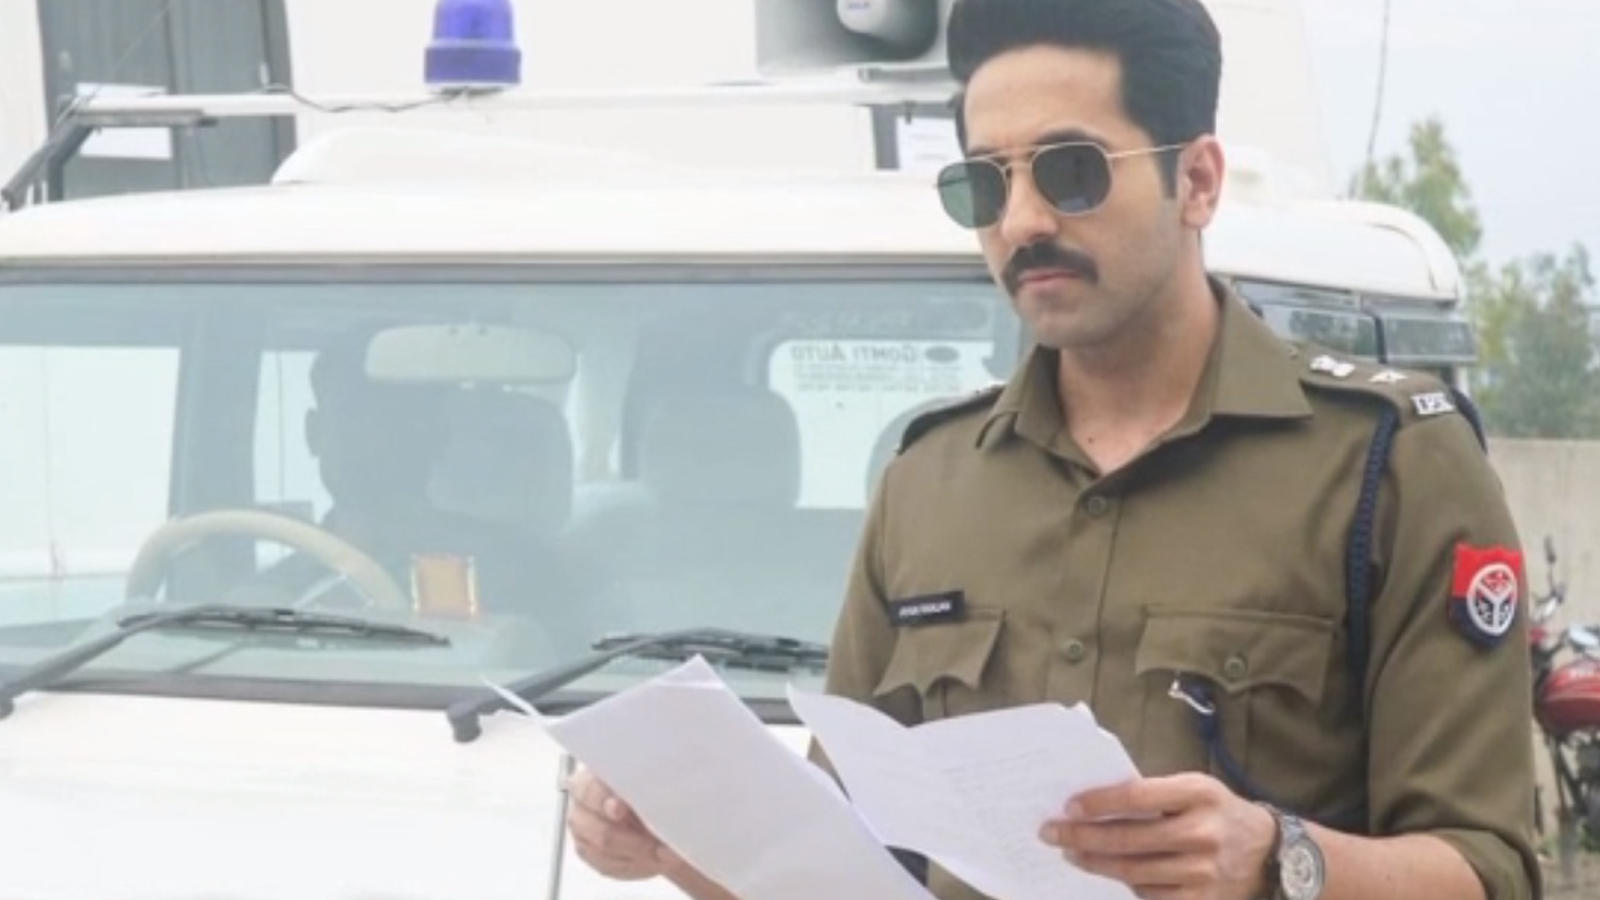 'Article 15' first look: Ayushmann Khurrana as police officer Anubhav Sinha